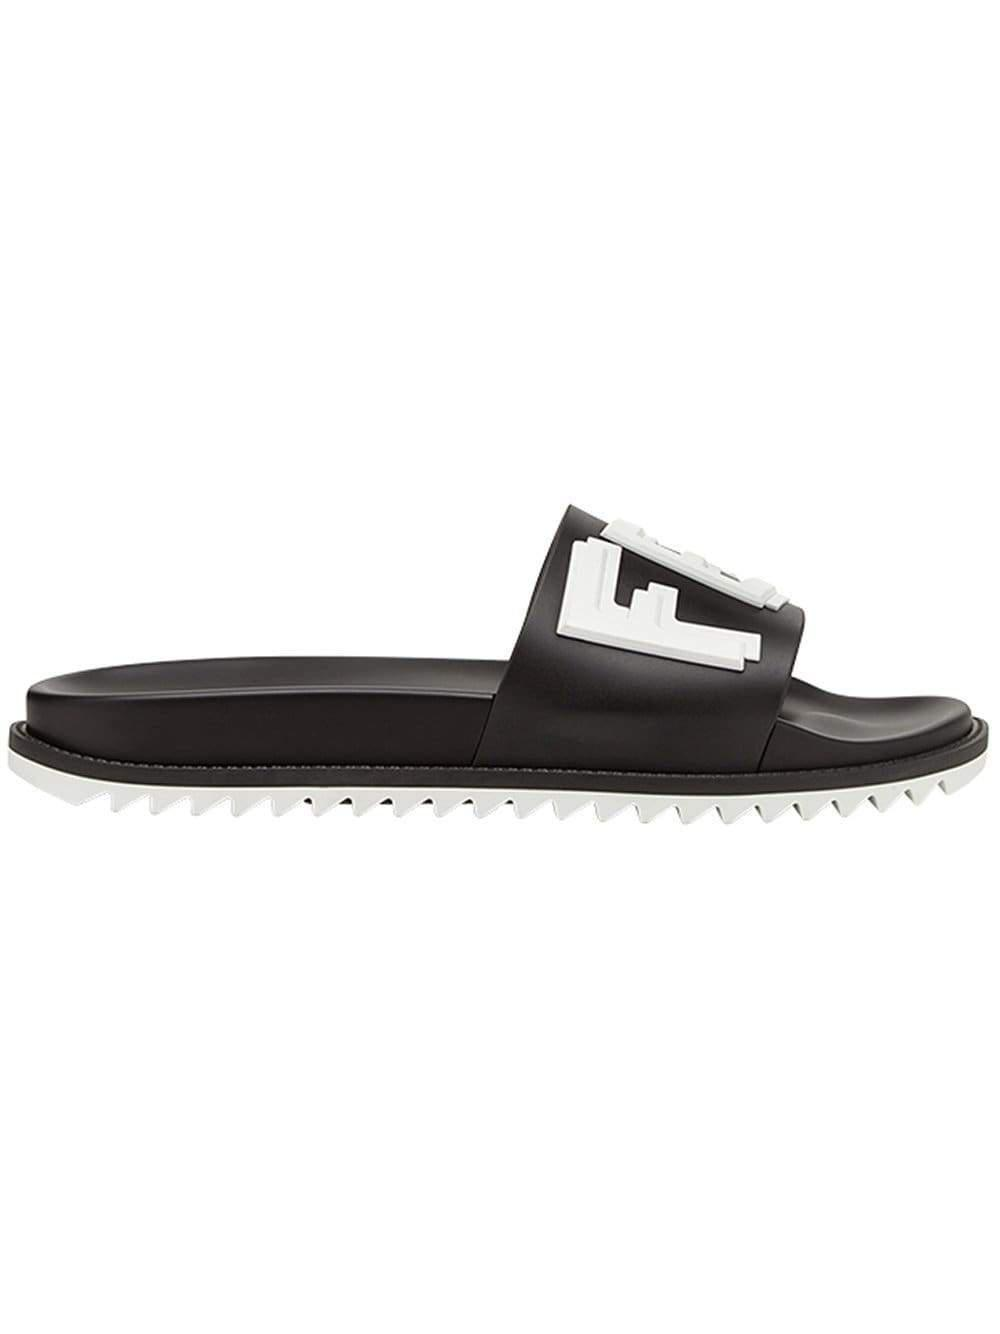 c9ace9e876fb Fendi Sandal in Black for Men - Lyst